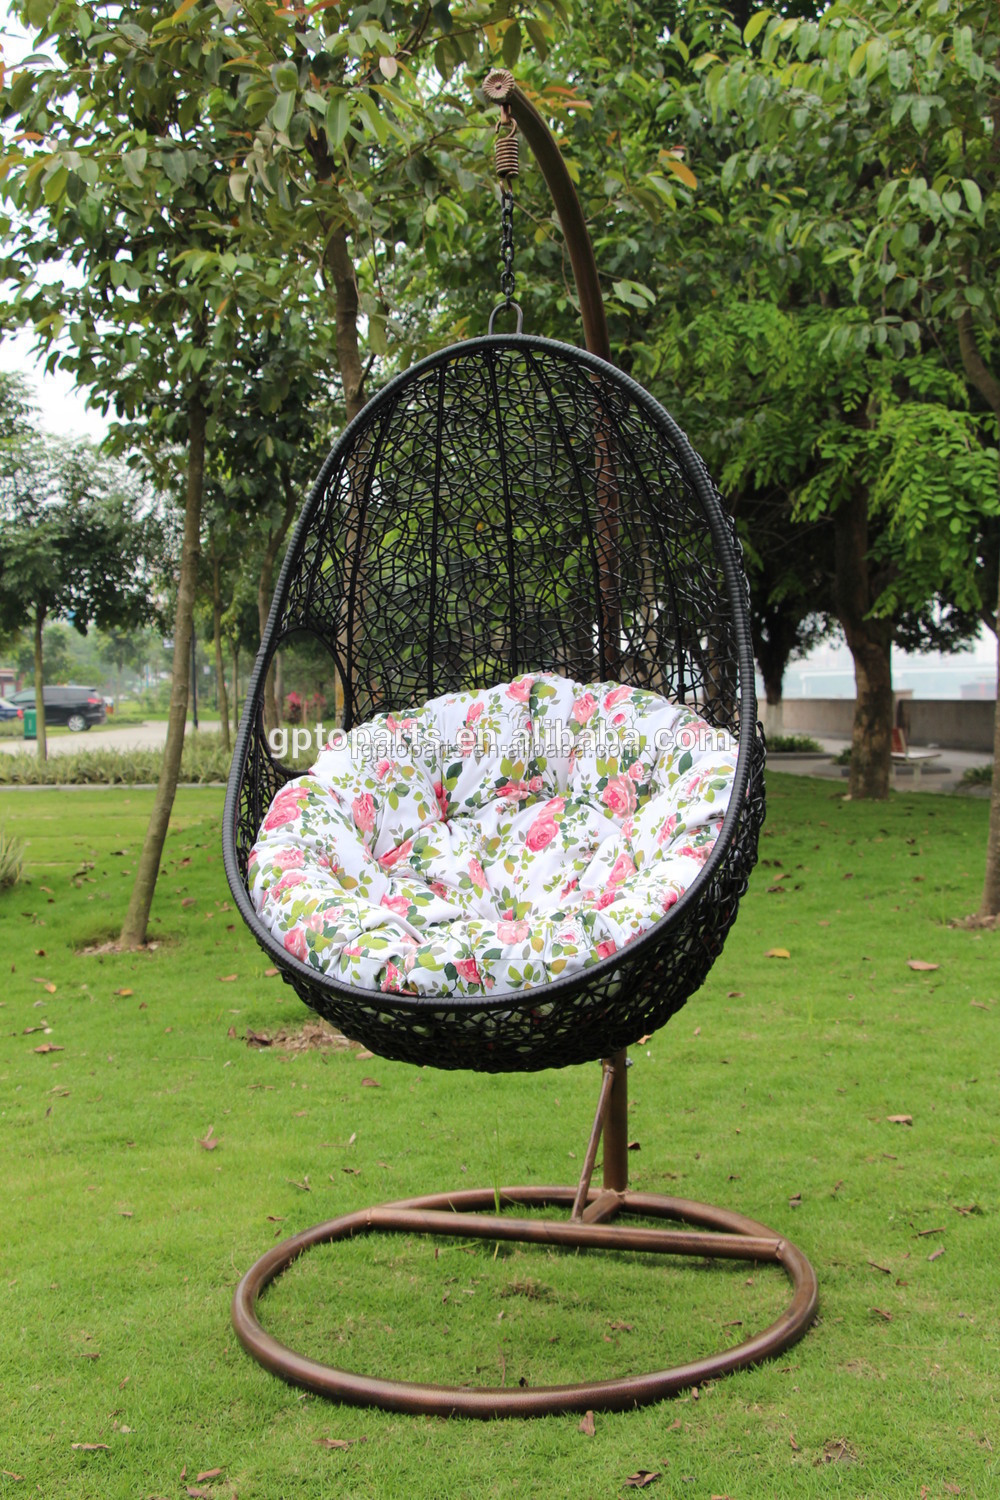 Swinging Chair Outdoor Best Selling Home Decor Outdoor Tear Drop Swinging Chair Buy Best Selling Home Decor Outdoor Tear Drop Swinging Chair Hanging Chair Wicker Chair